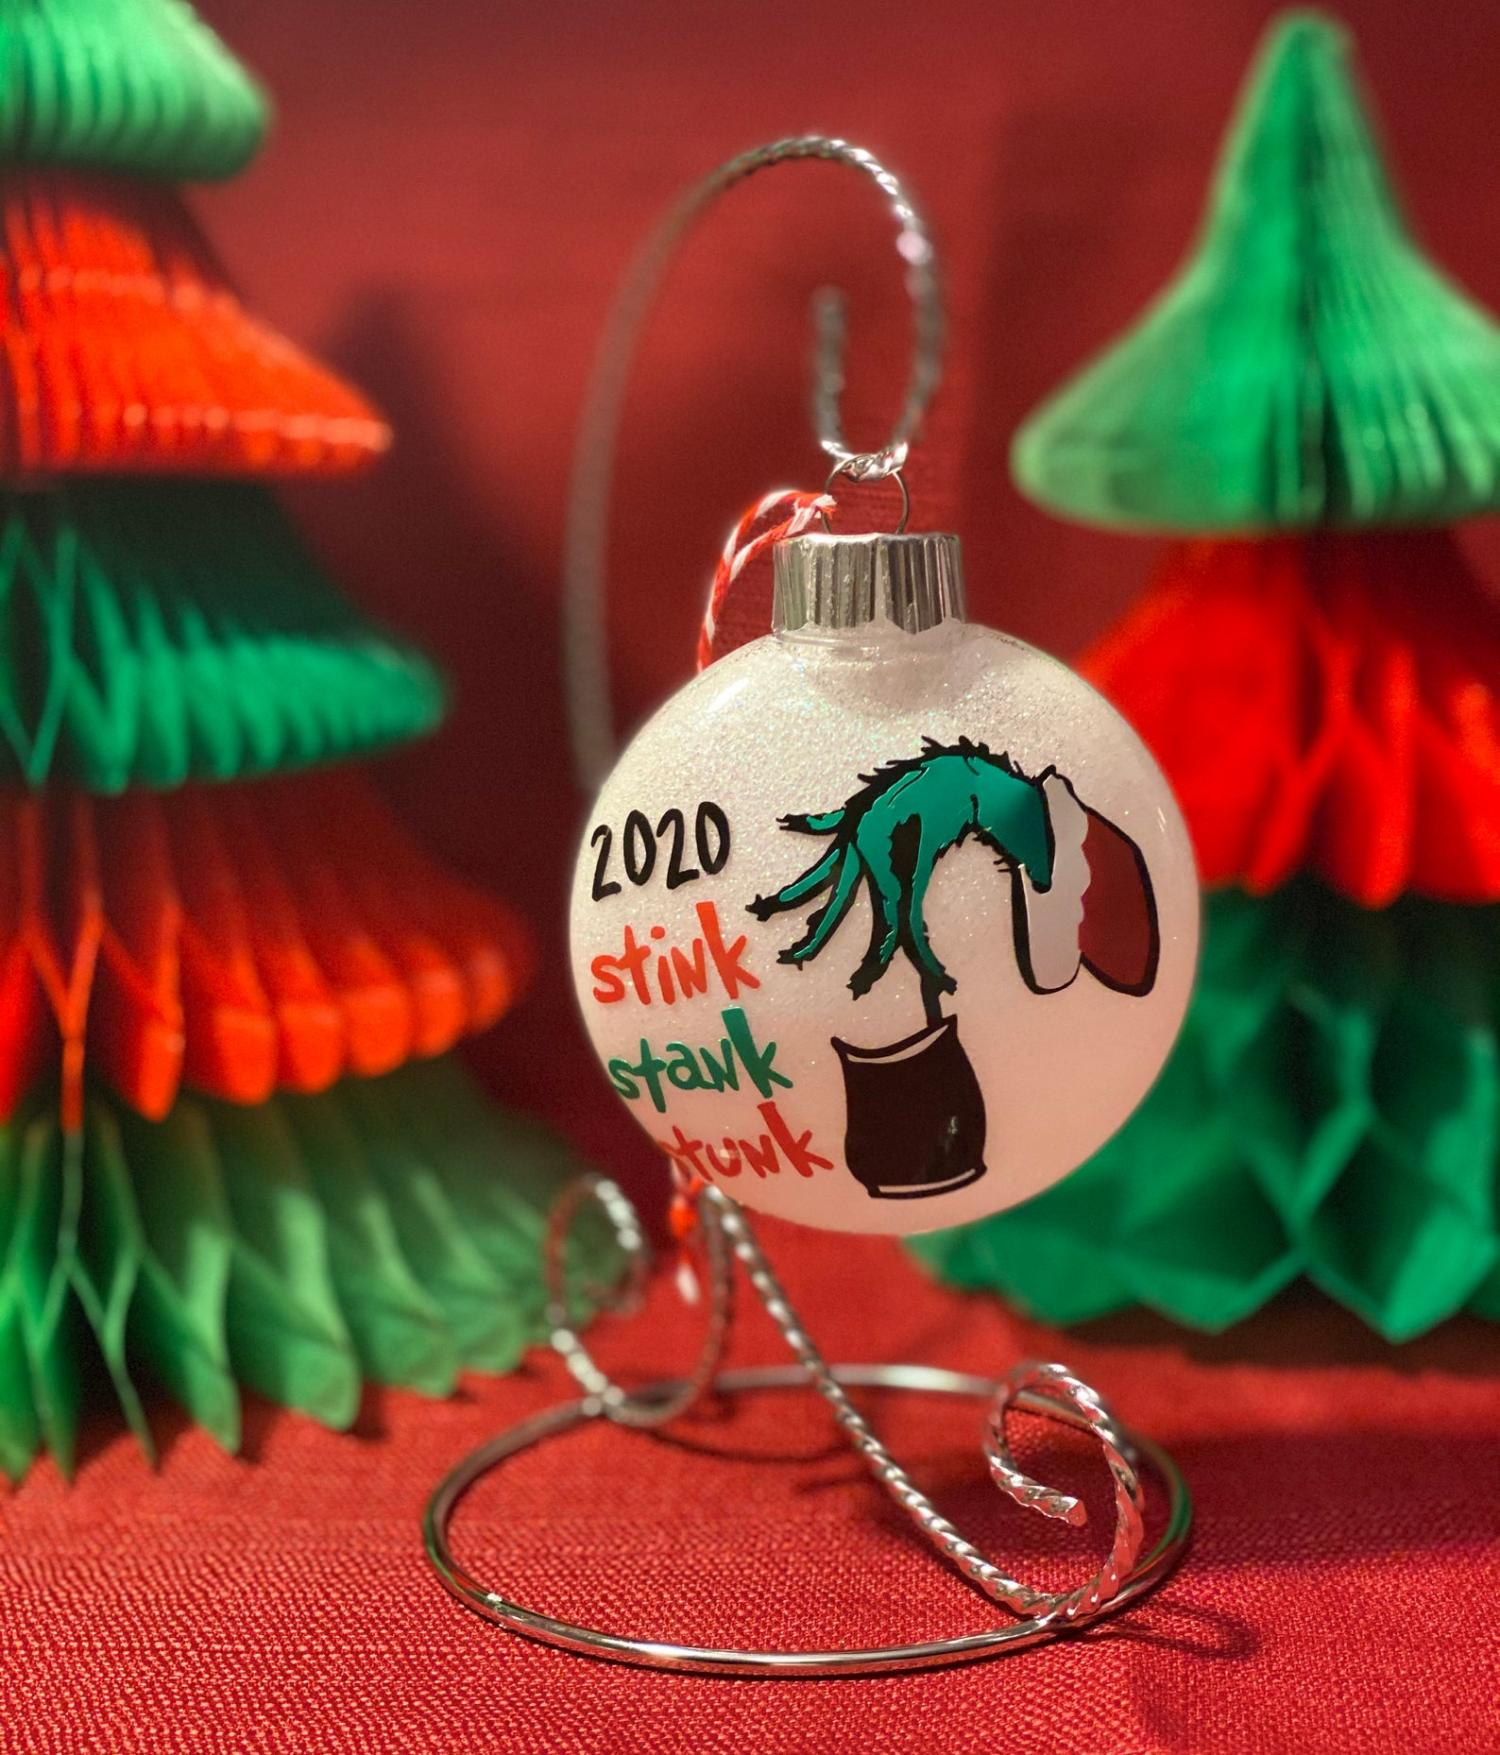 The Grinch Facemask 2020 Ornament Bulb Stink Stank Stunk